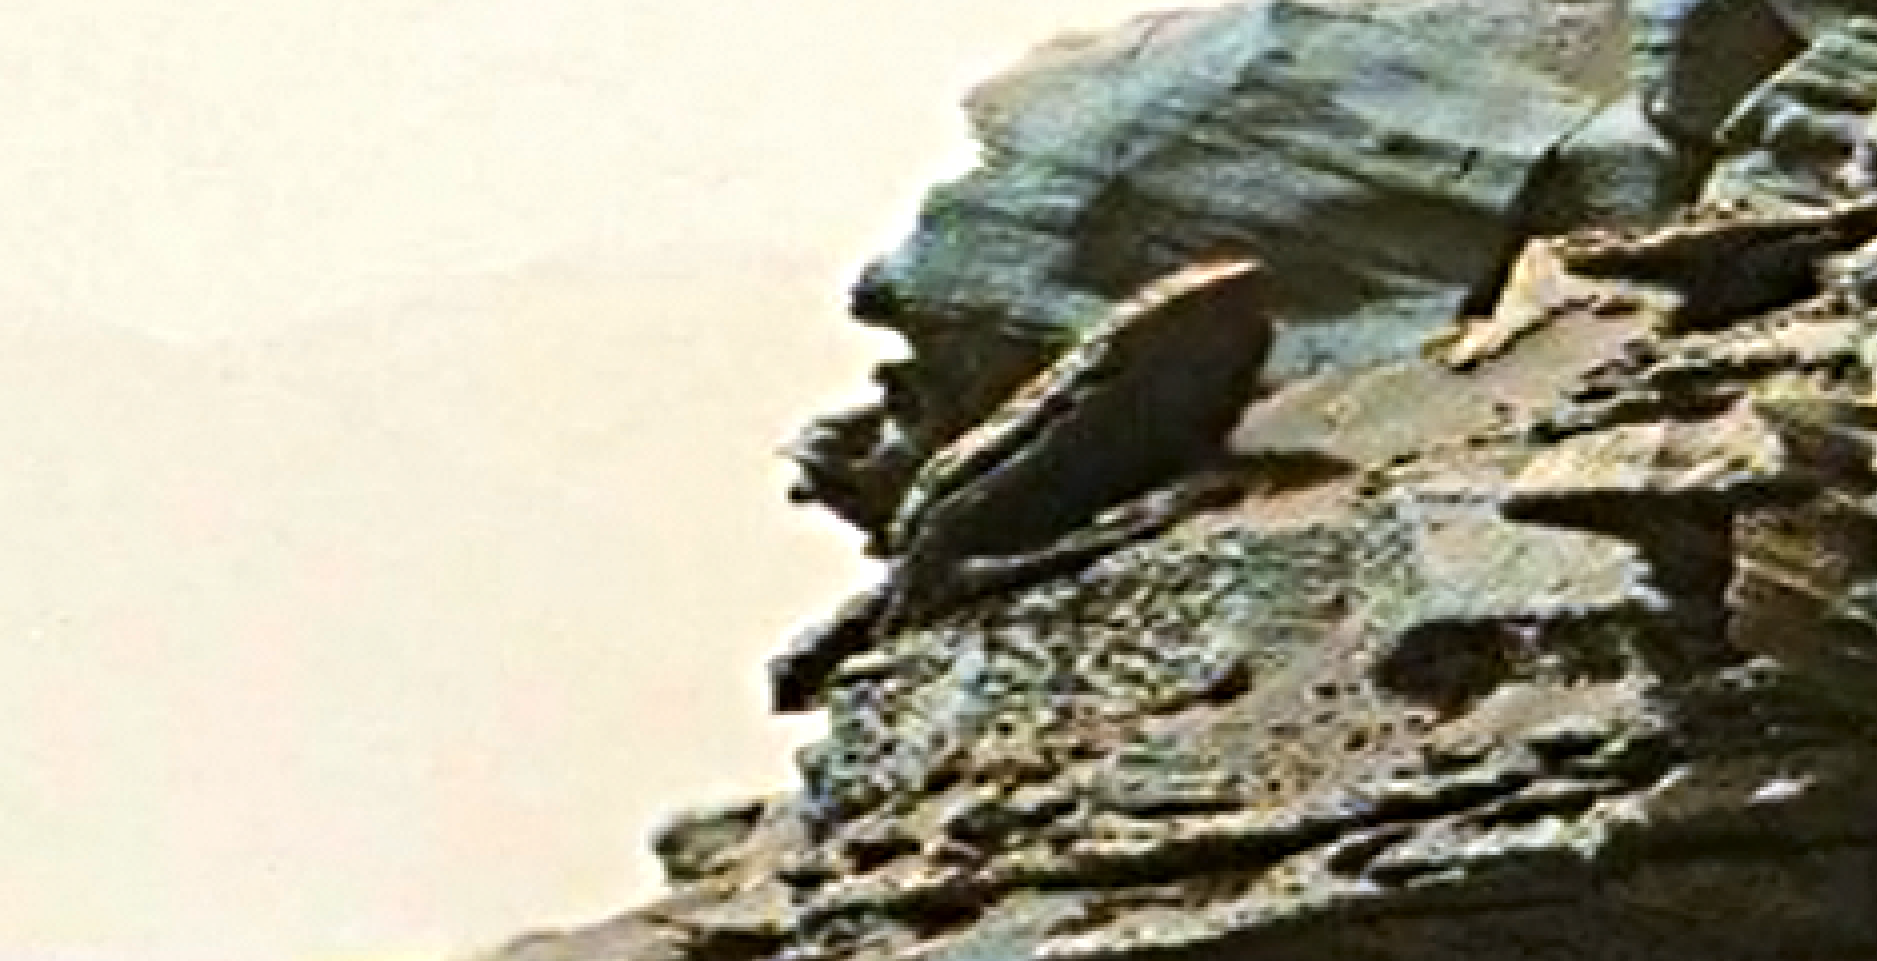 mars-sol-1454-anomaly-artifacts-2abt-was-life-on-mars